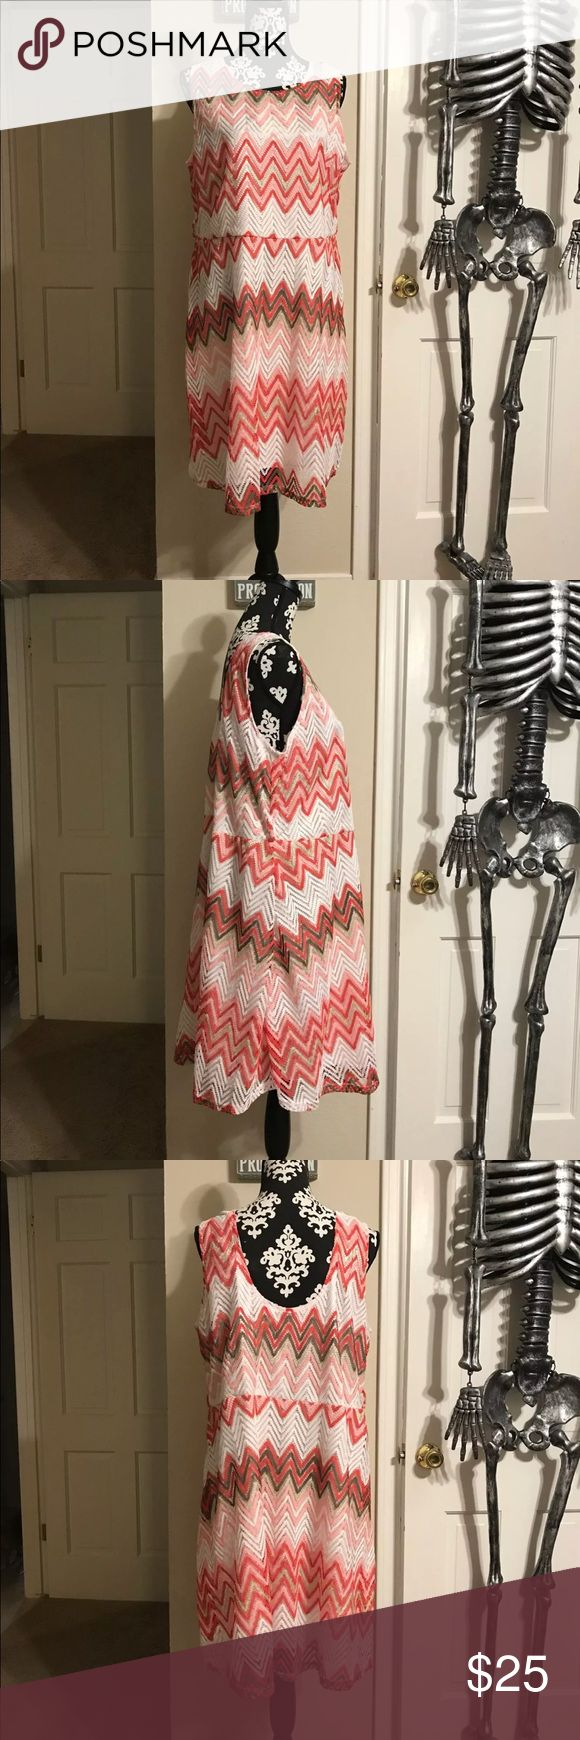 NWT PLUS SIZE CHEVRON DRESS SIZE 3XL NWT PLUS SIZE CHEVRON DRESS SIZE 3XL LINED WHITE, CORAL, PINK, GOLD & GREEN •THERE ARE LOOPS FOR A BELT BUT IT DID NOT COME WITH A BELT •HIGH NECK SLIGHT SCOOP BACK •APPROXIMATELY 22 ACROSS THE CHEST AND 25 WHERE THE WAIST WOULD FALL SMOKE FREE BUT PET FRIENDLY HOME Dresses Midi